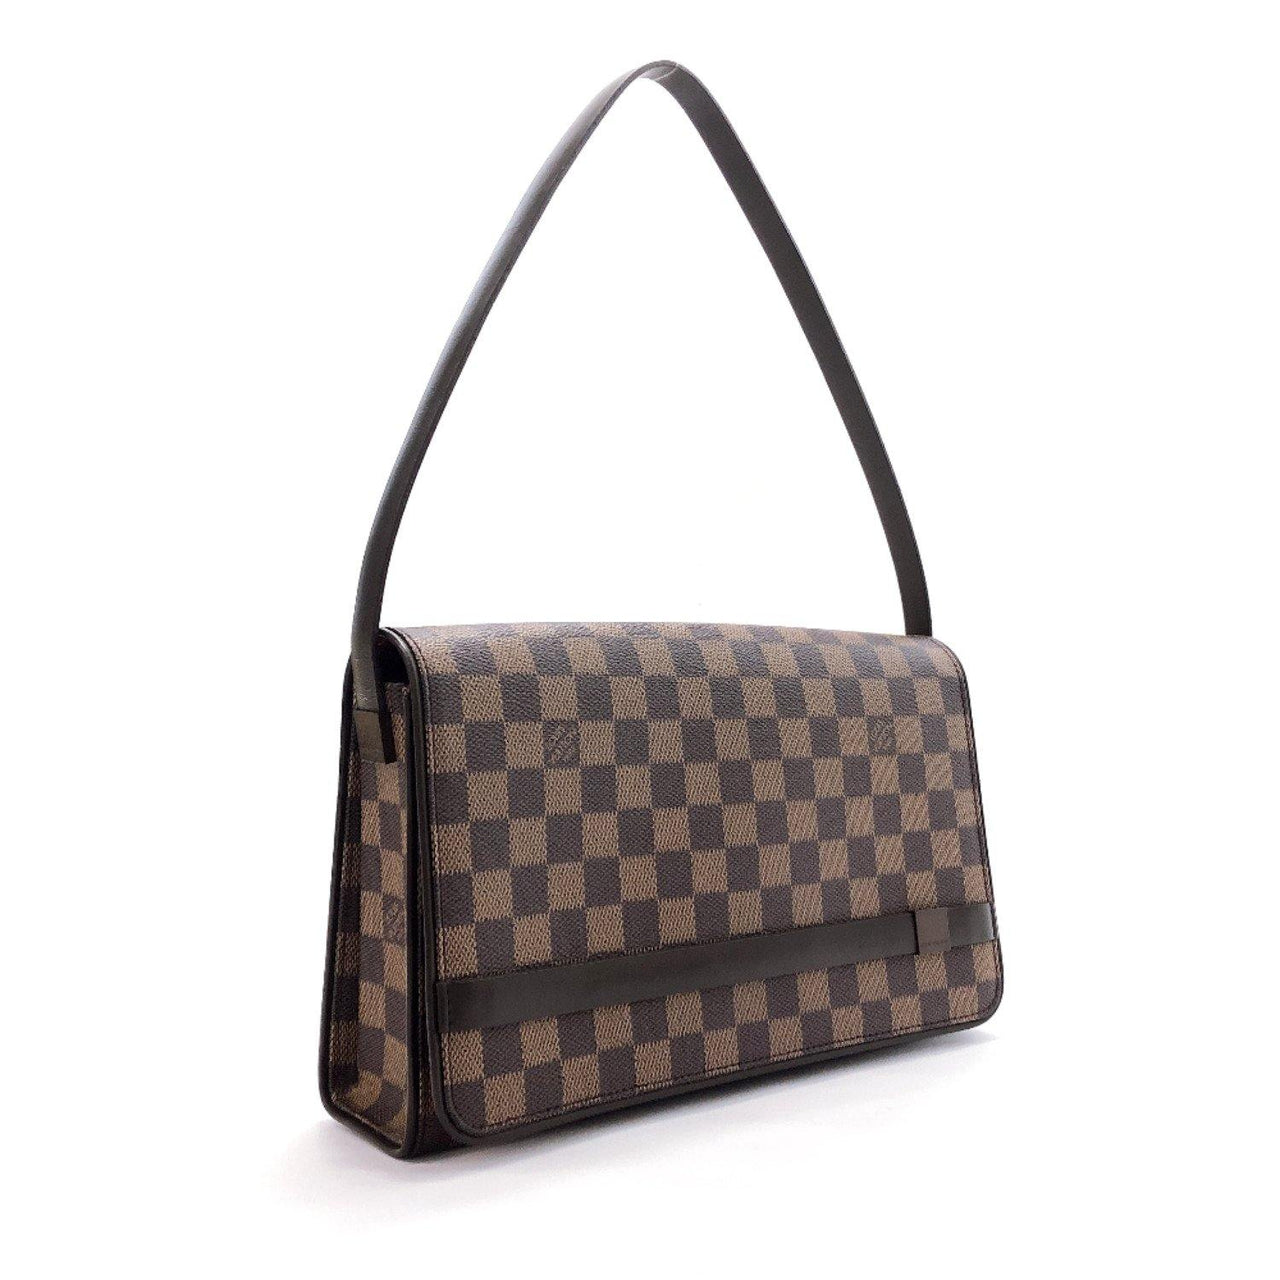 LOUIS VUITTON Shoulder Bag N51160 Tribeca Ron Damier canvas Brown Women Used